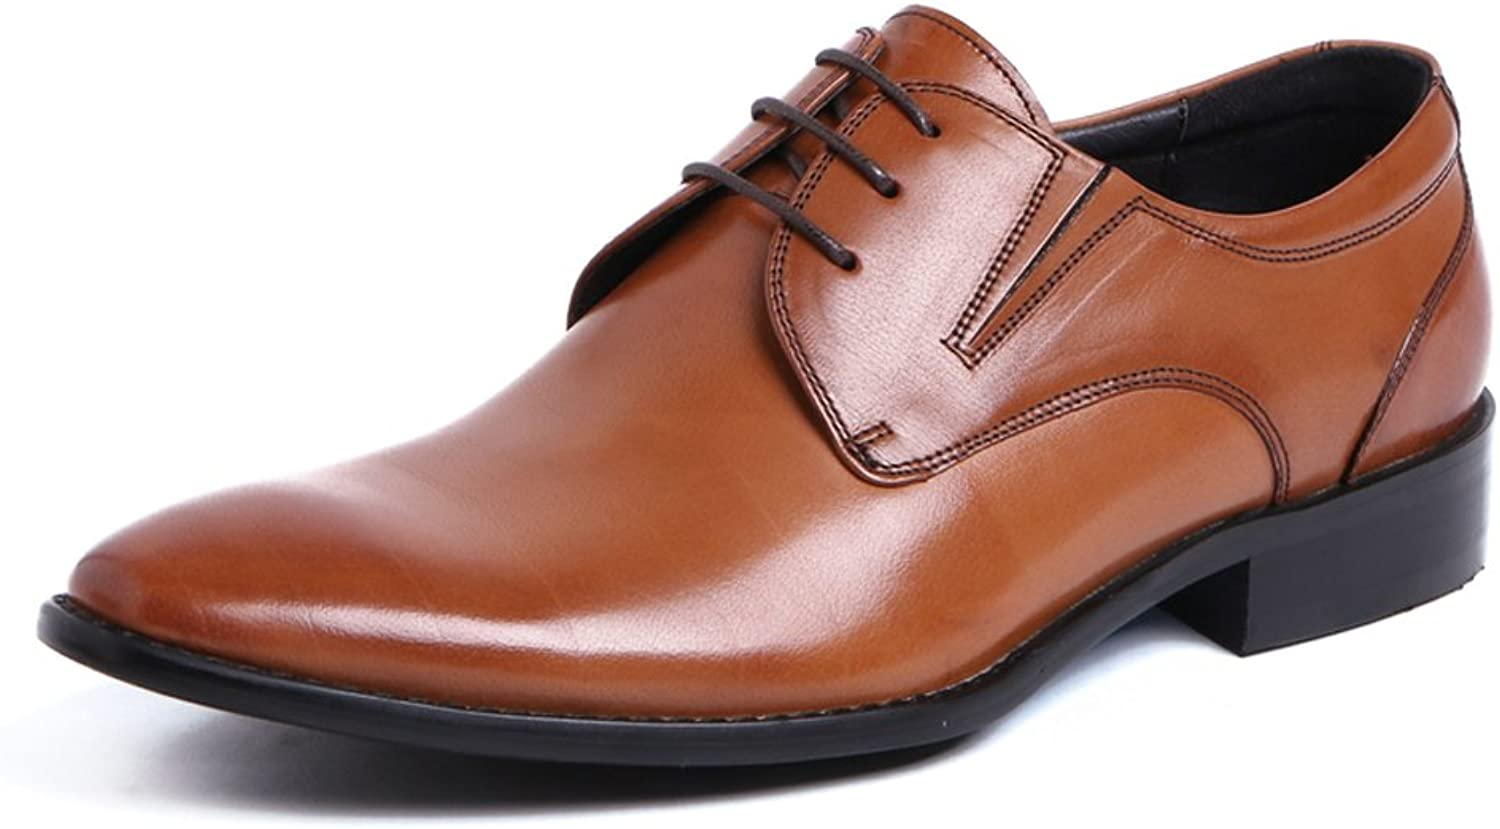 UNbox Men's Pointed Cap-Toe Leather Casual Dress Oxford